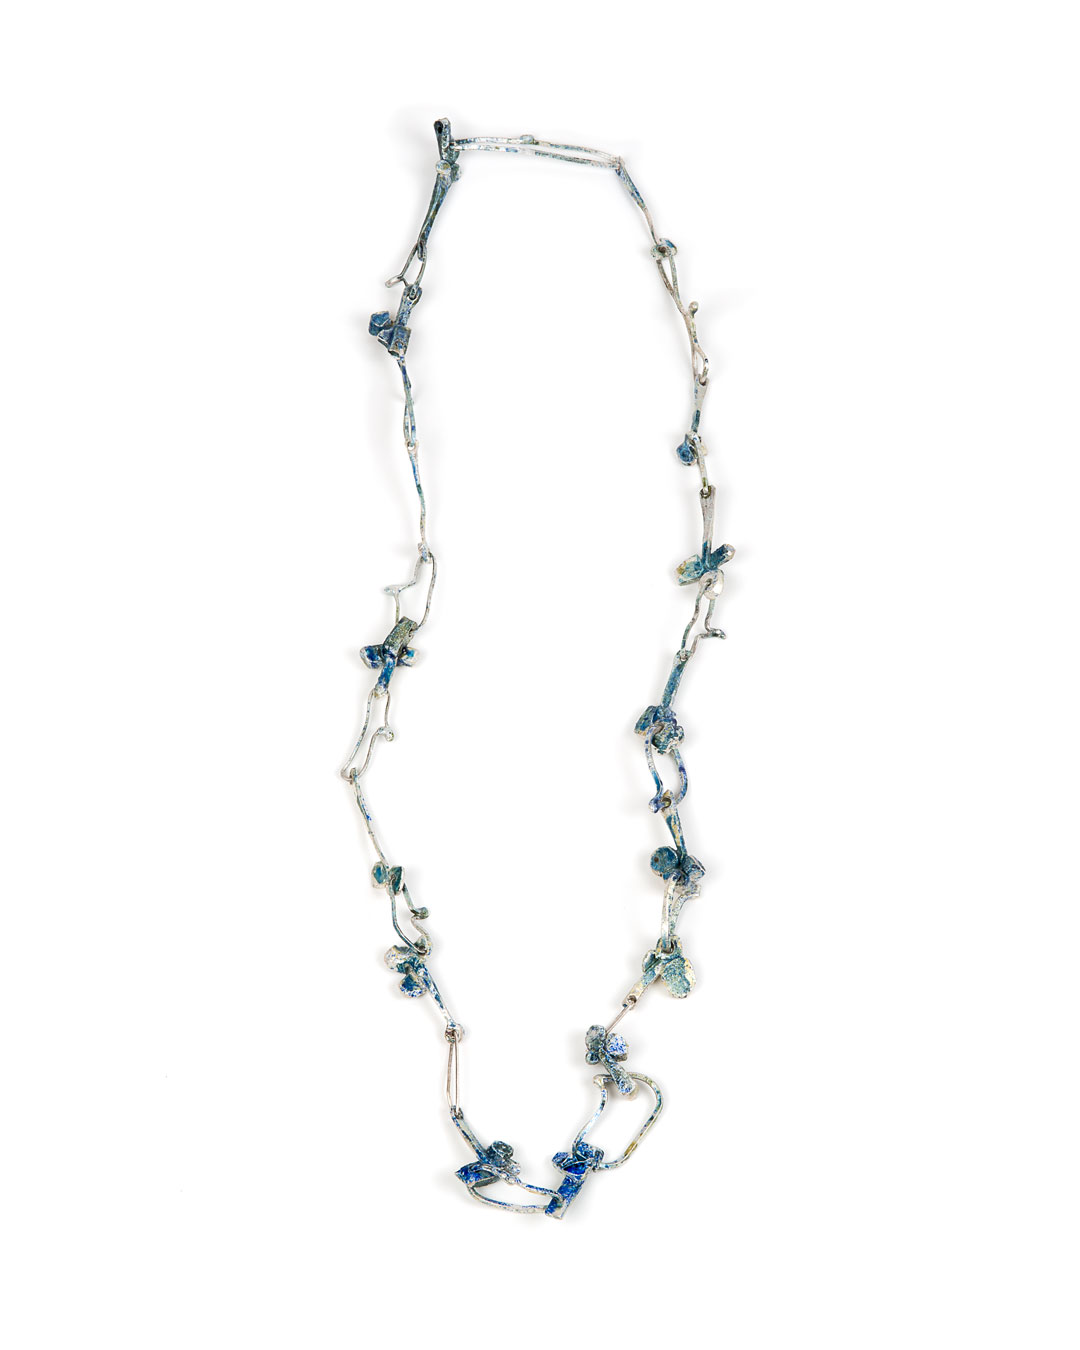 Rudolf Kocéa, Clubs, 2019, necklace; fine silver, enamel, L 800 mm, €2800